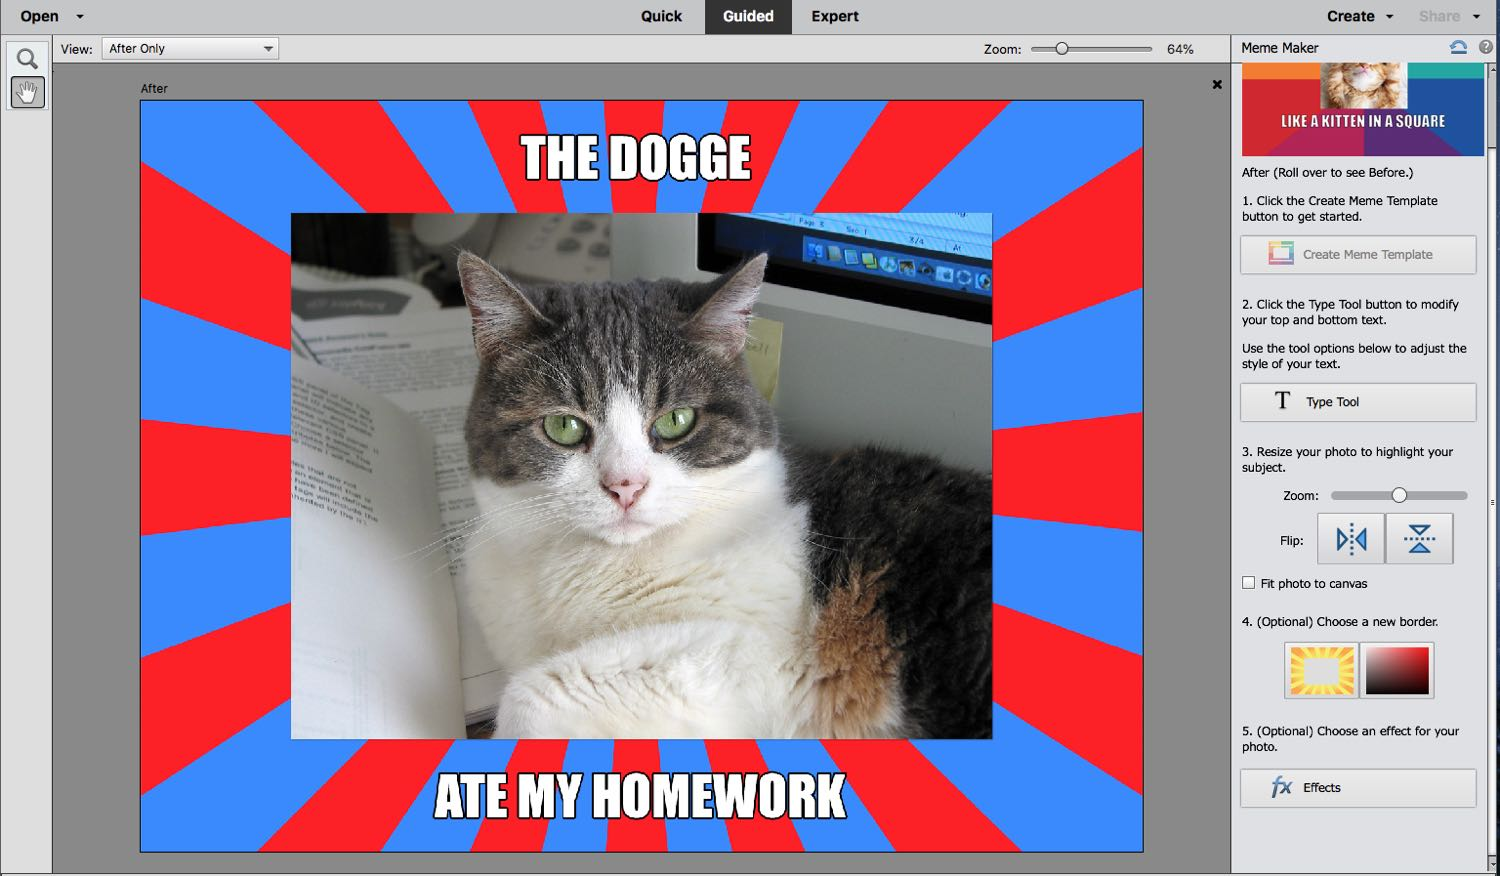 A cat image surrounded with red & blue Frame